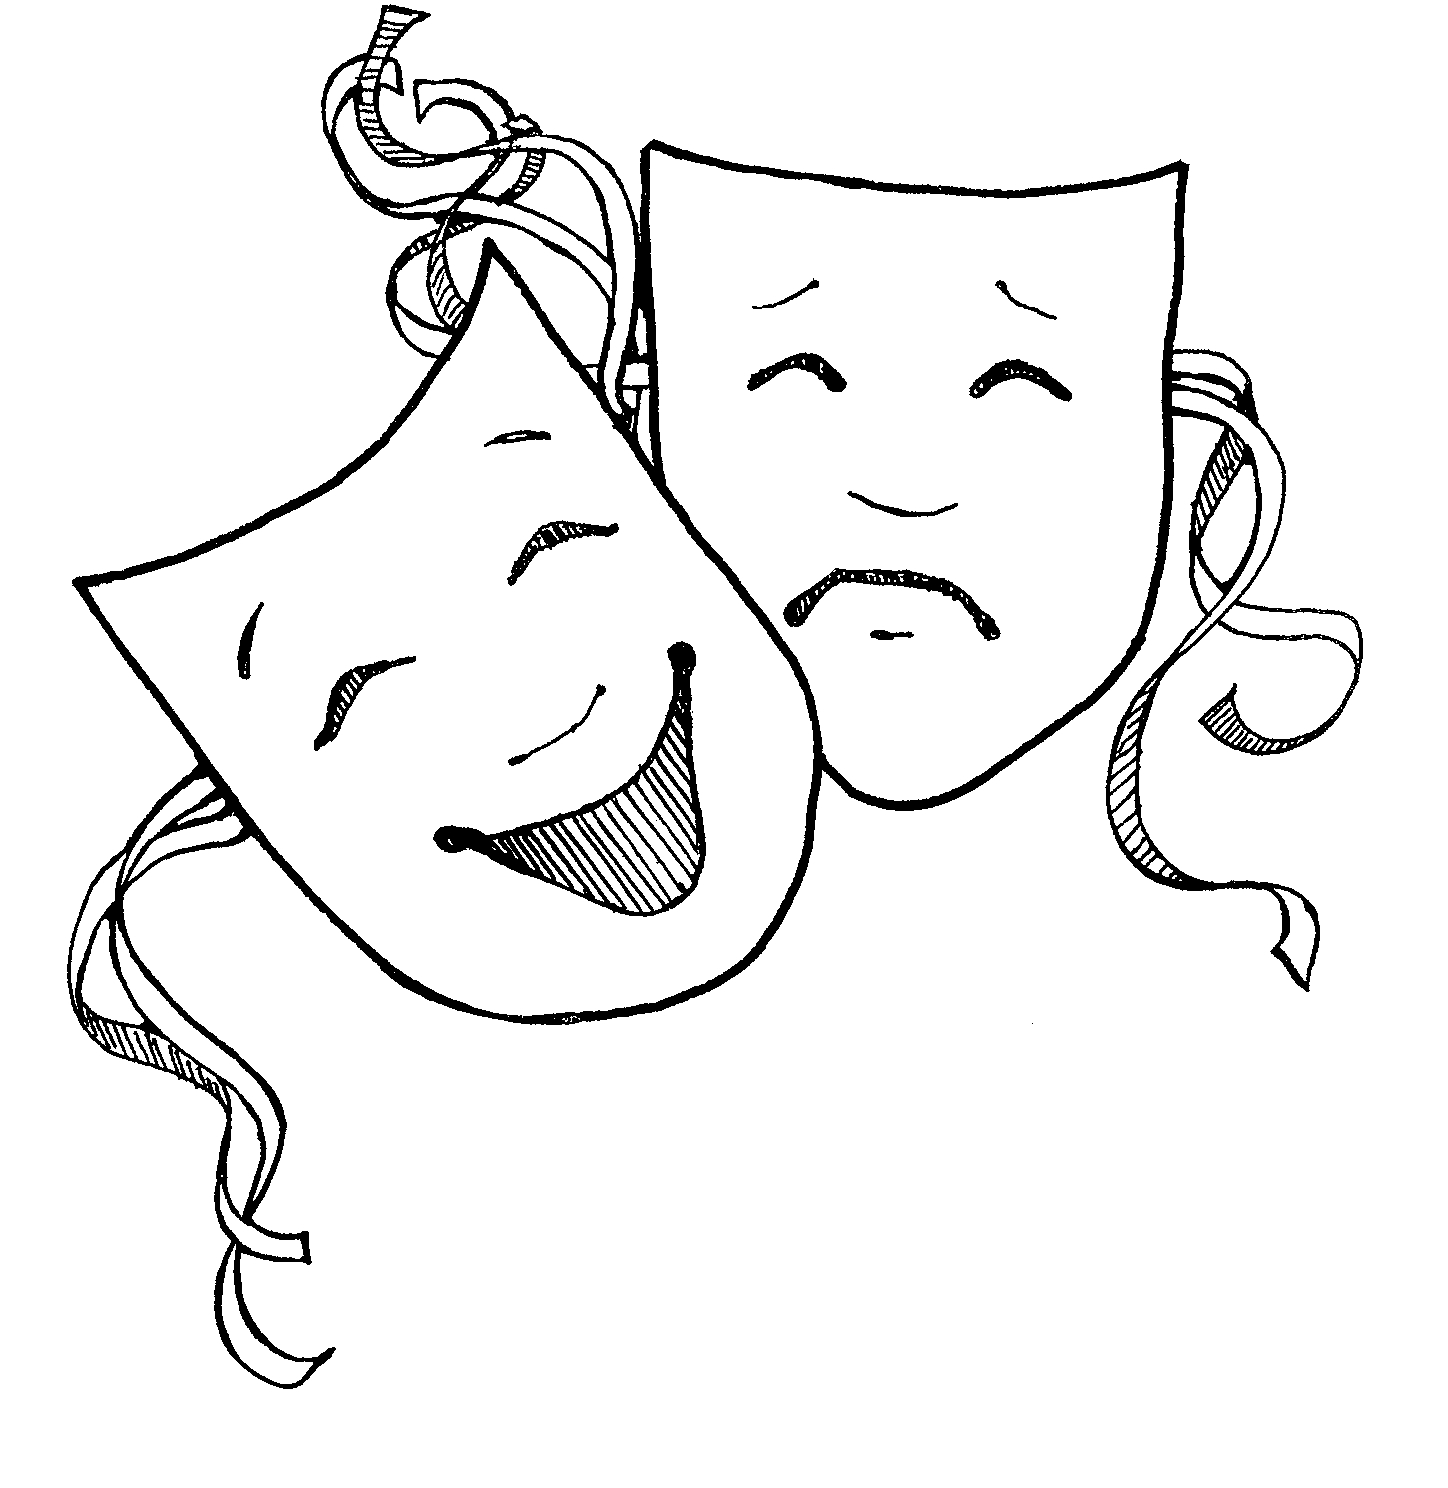 Clipart Drama Masks Free - ClipartFest-Clipart drama masks free - ClipartFest-0